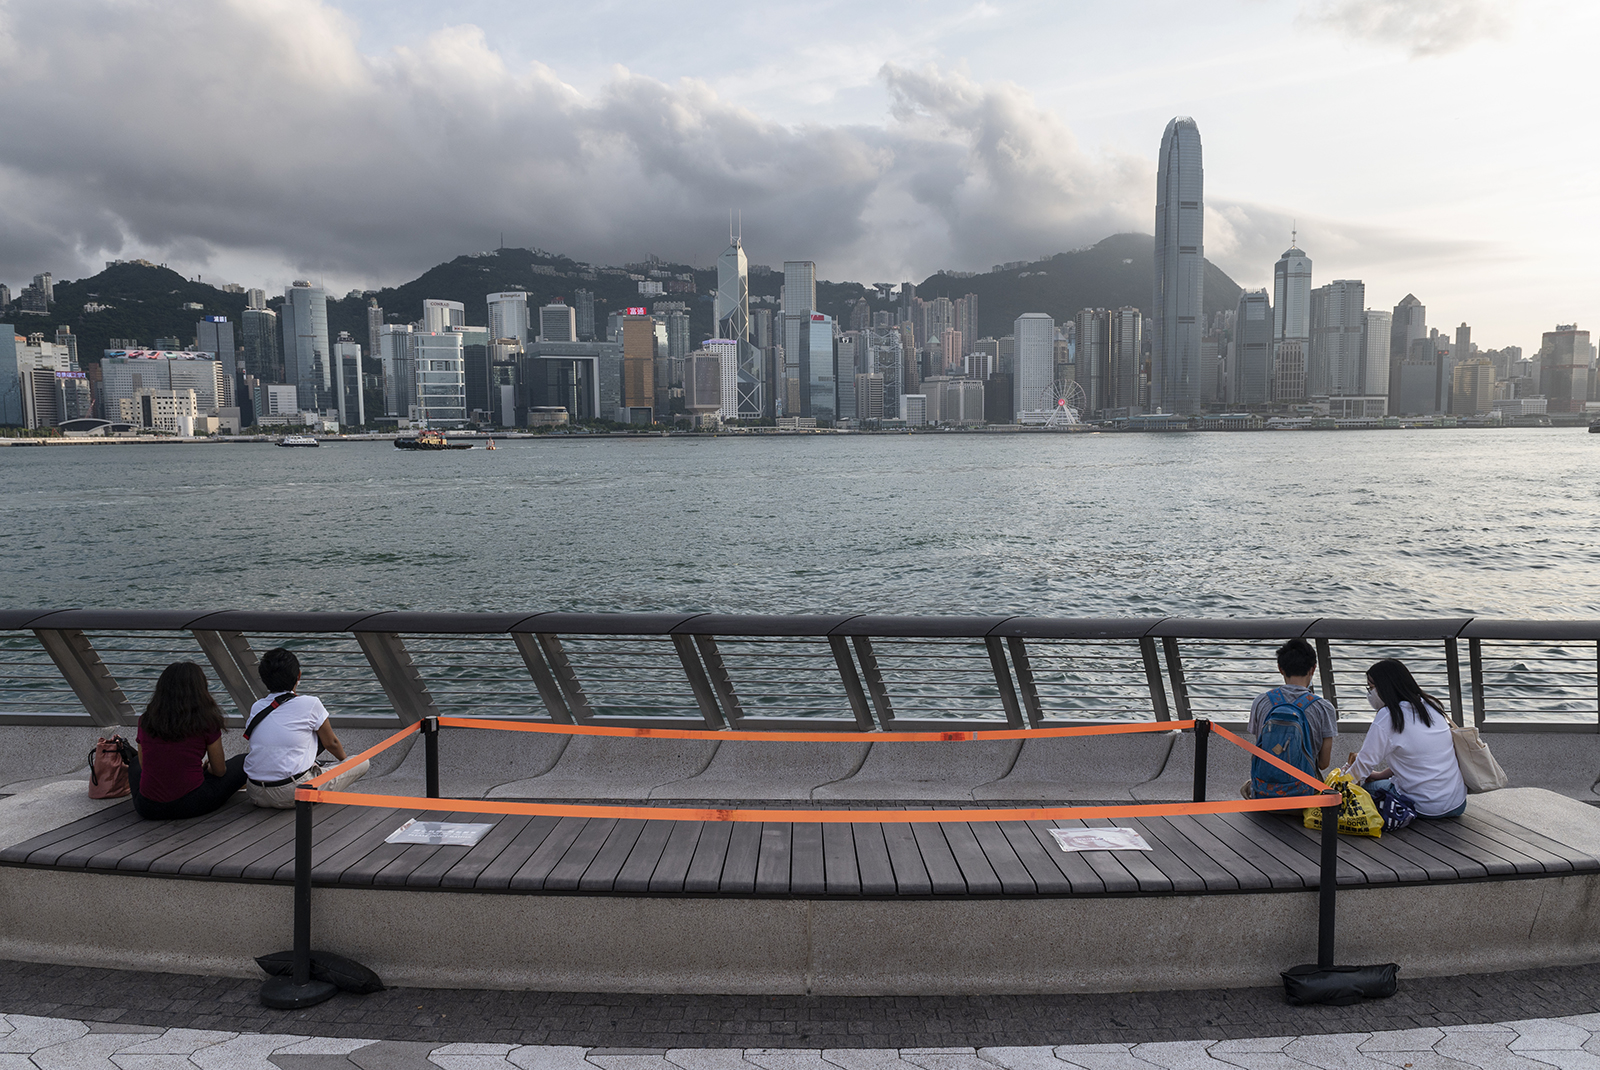 Couples sit and enjoy the view of he Victoria harbor as public benches are seen with orange tape to block access to them in Tsim Sha Tsui, Hong Kong, China, on August 24.